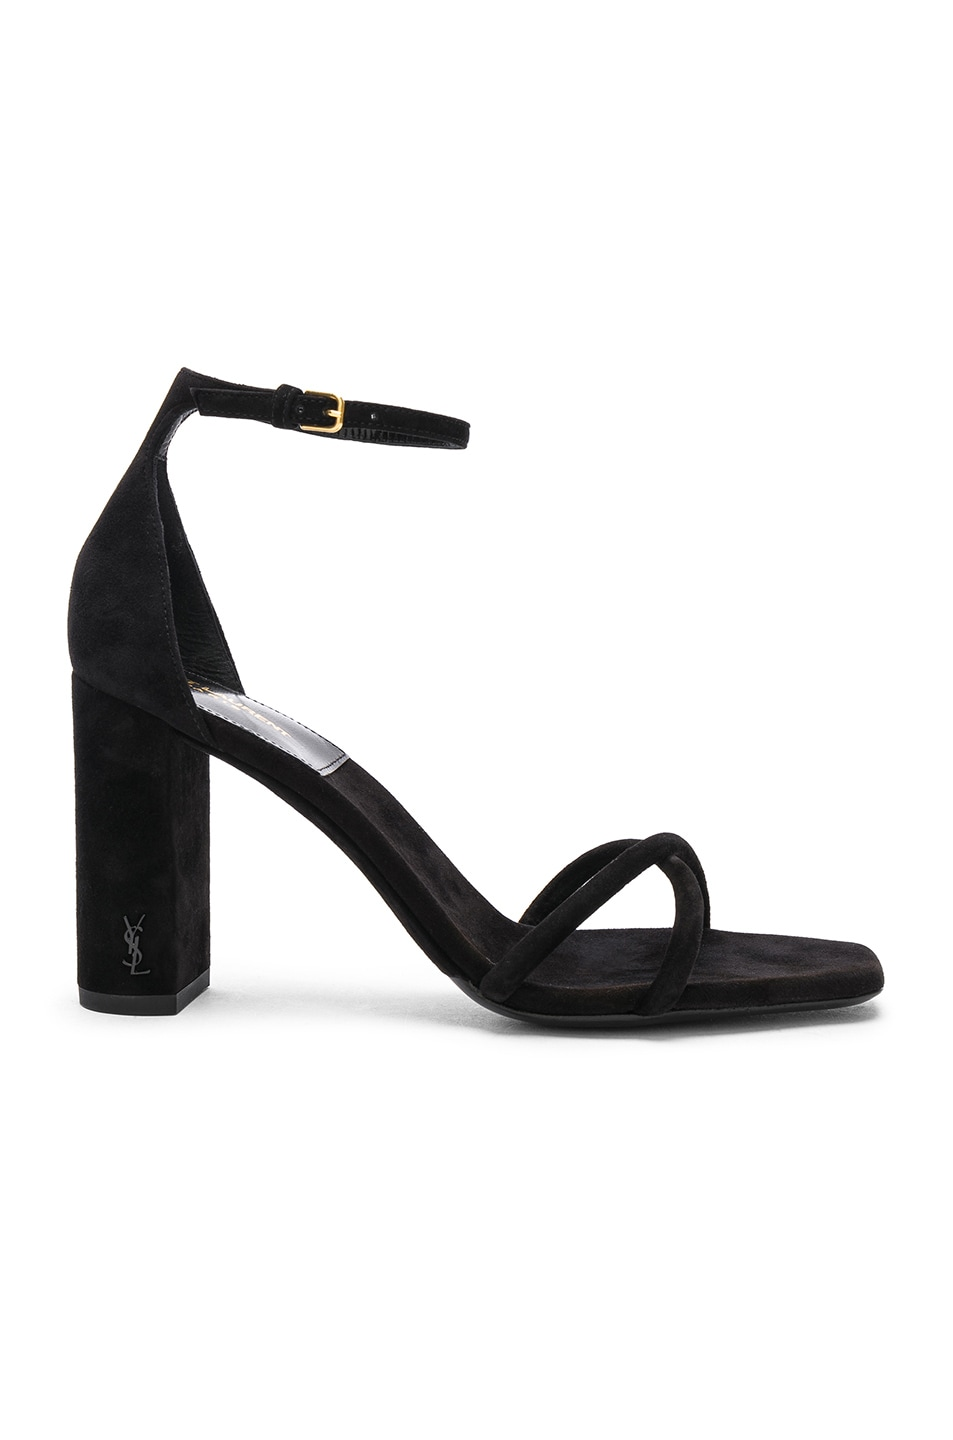 Image 1 of Saint Laurent Suede Pin Loulou Ankle Strap Sandals in Black